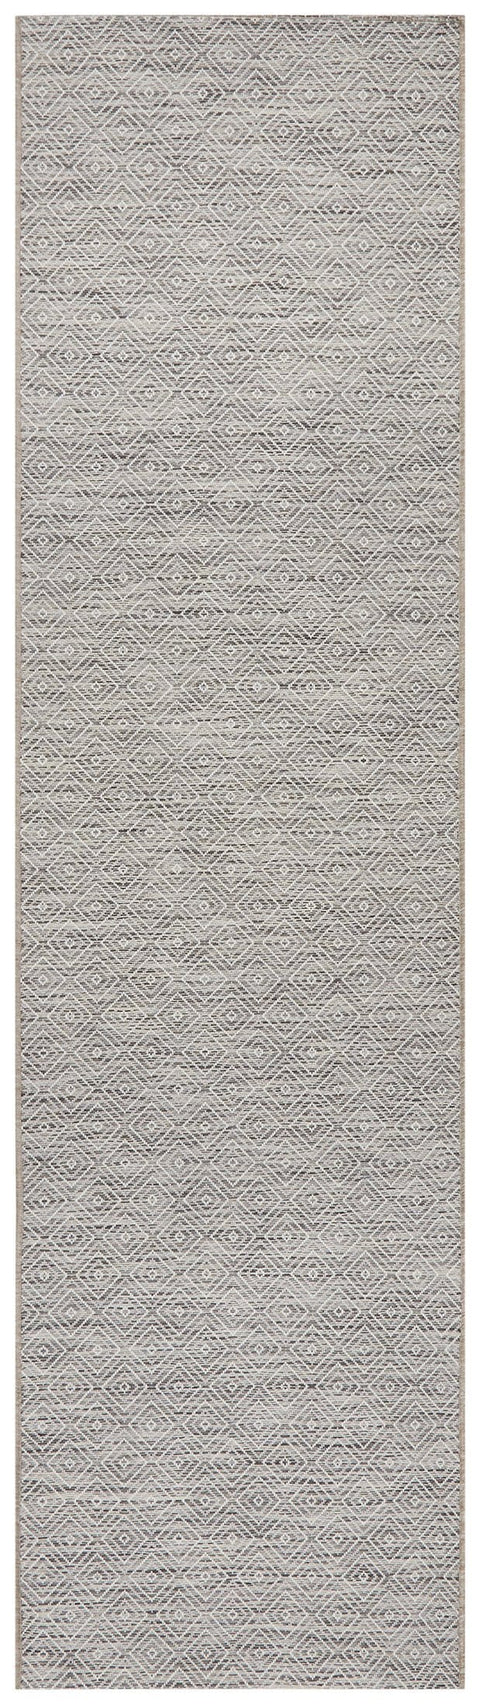 Cordoba Natural Stone Grey Diamond Runner Rug